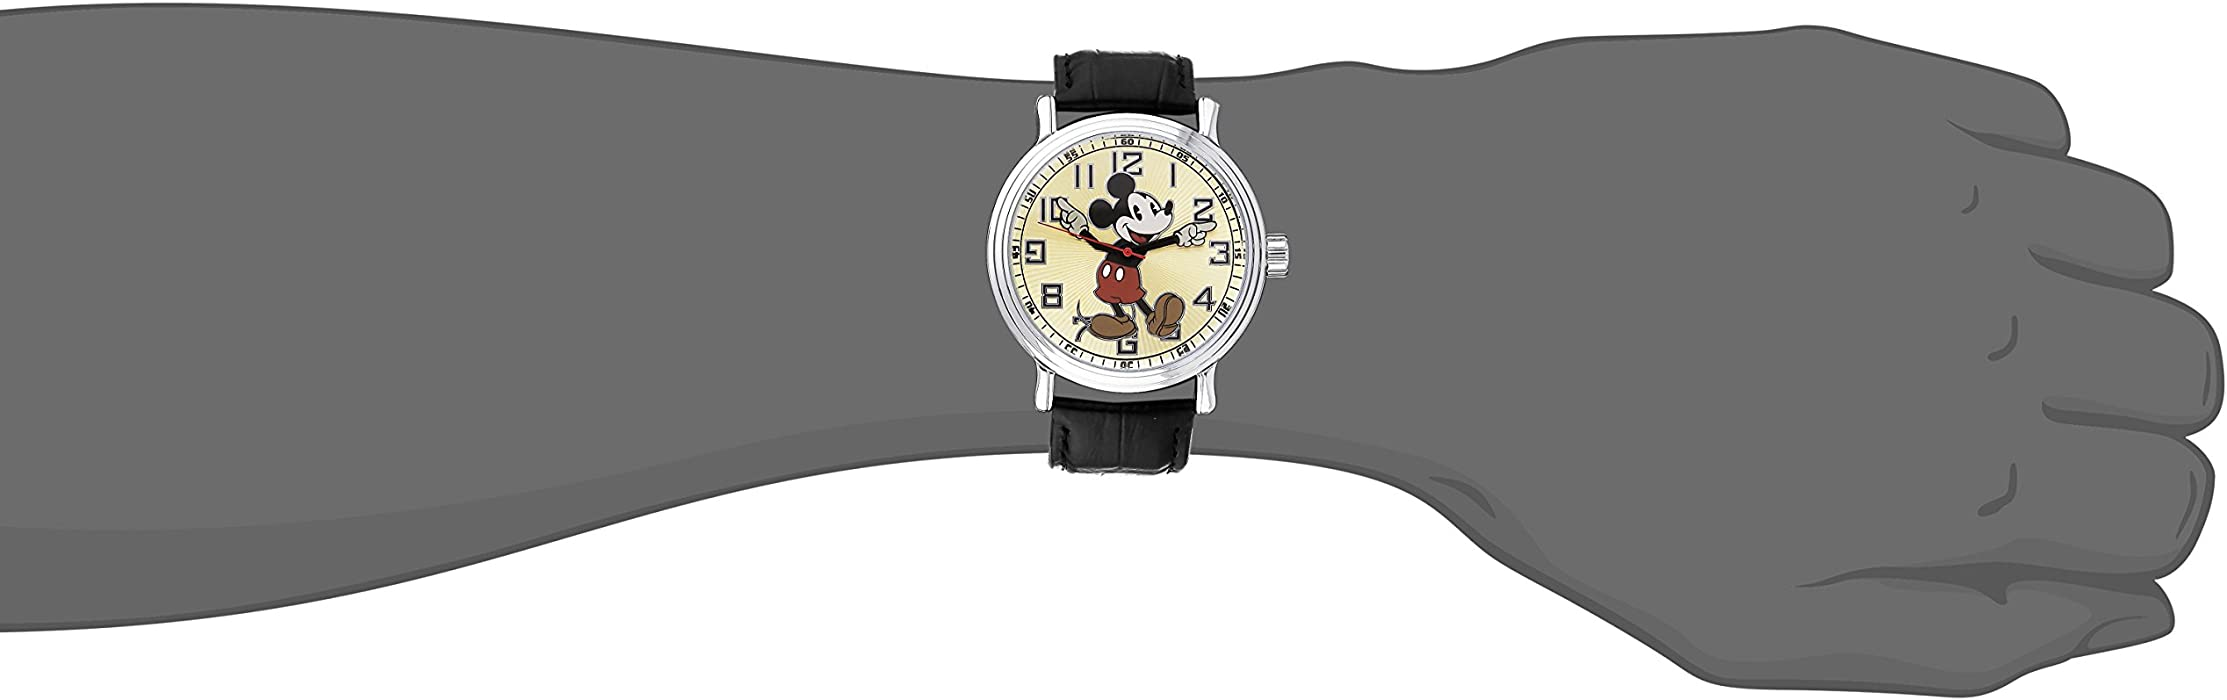 Disney Men 56109 quotVintage Mickey Mousequot Watch with Black Leather Band